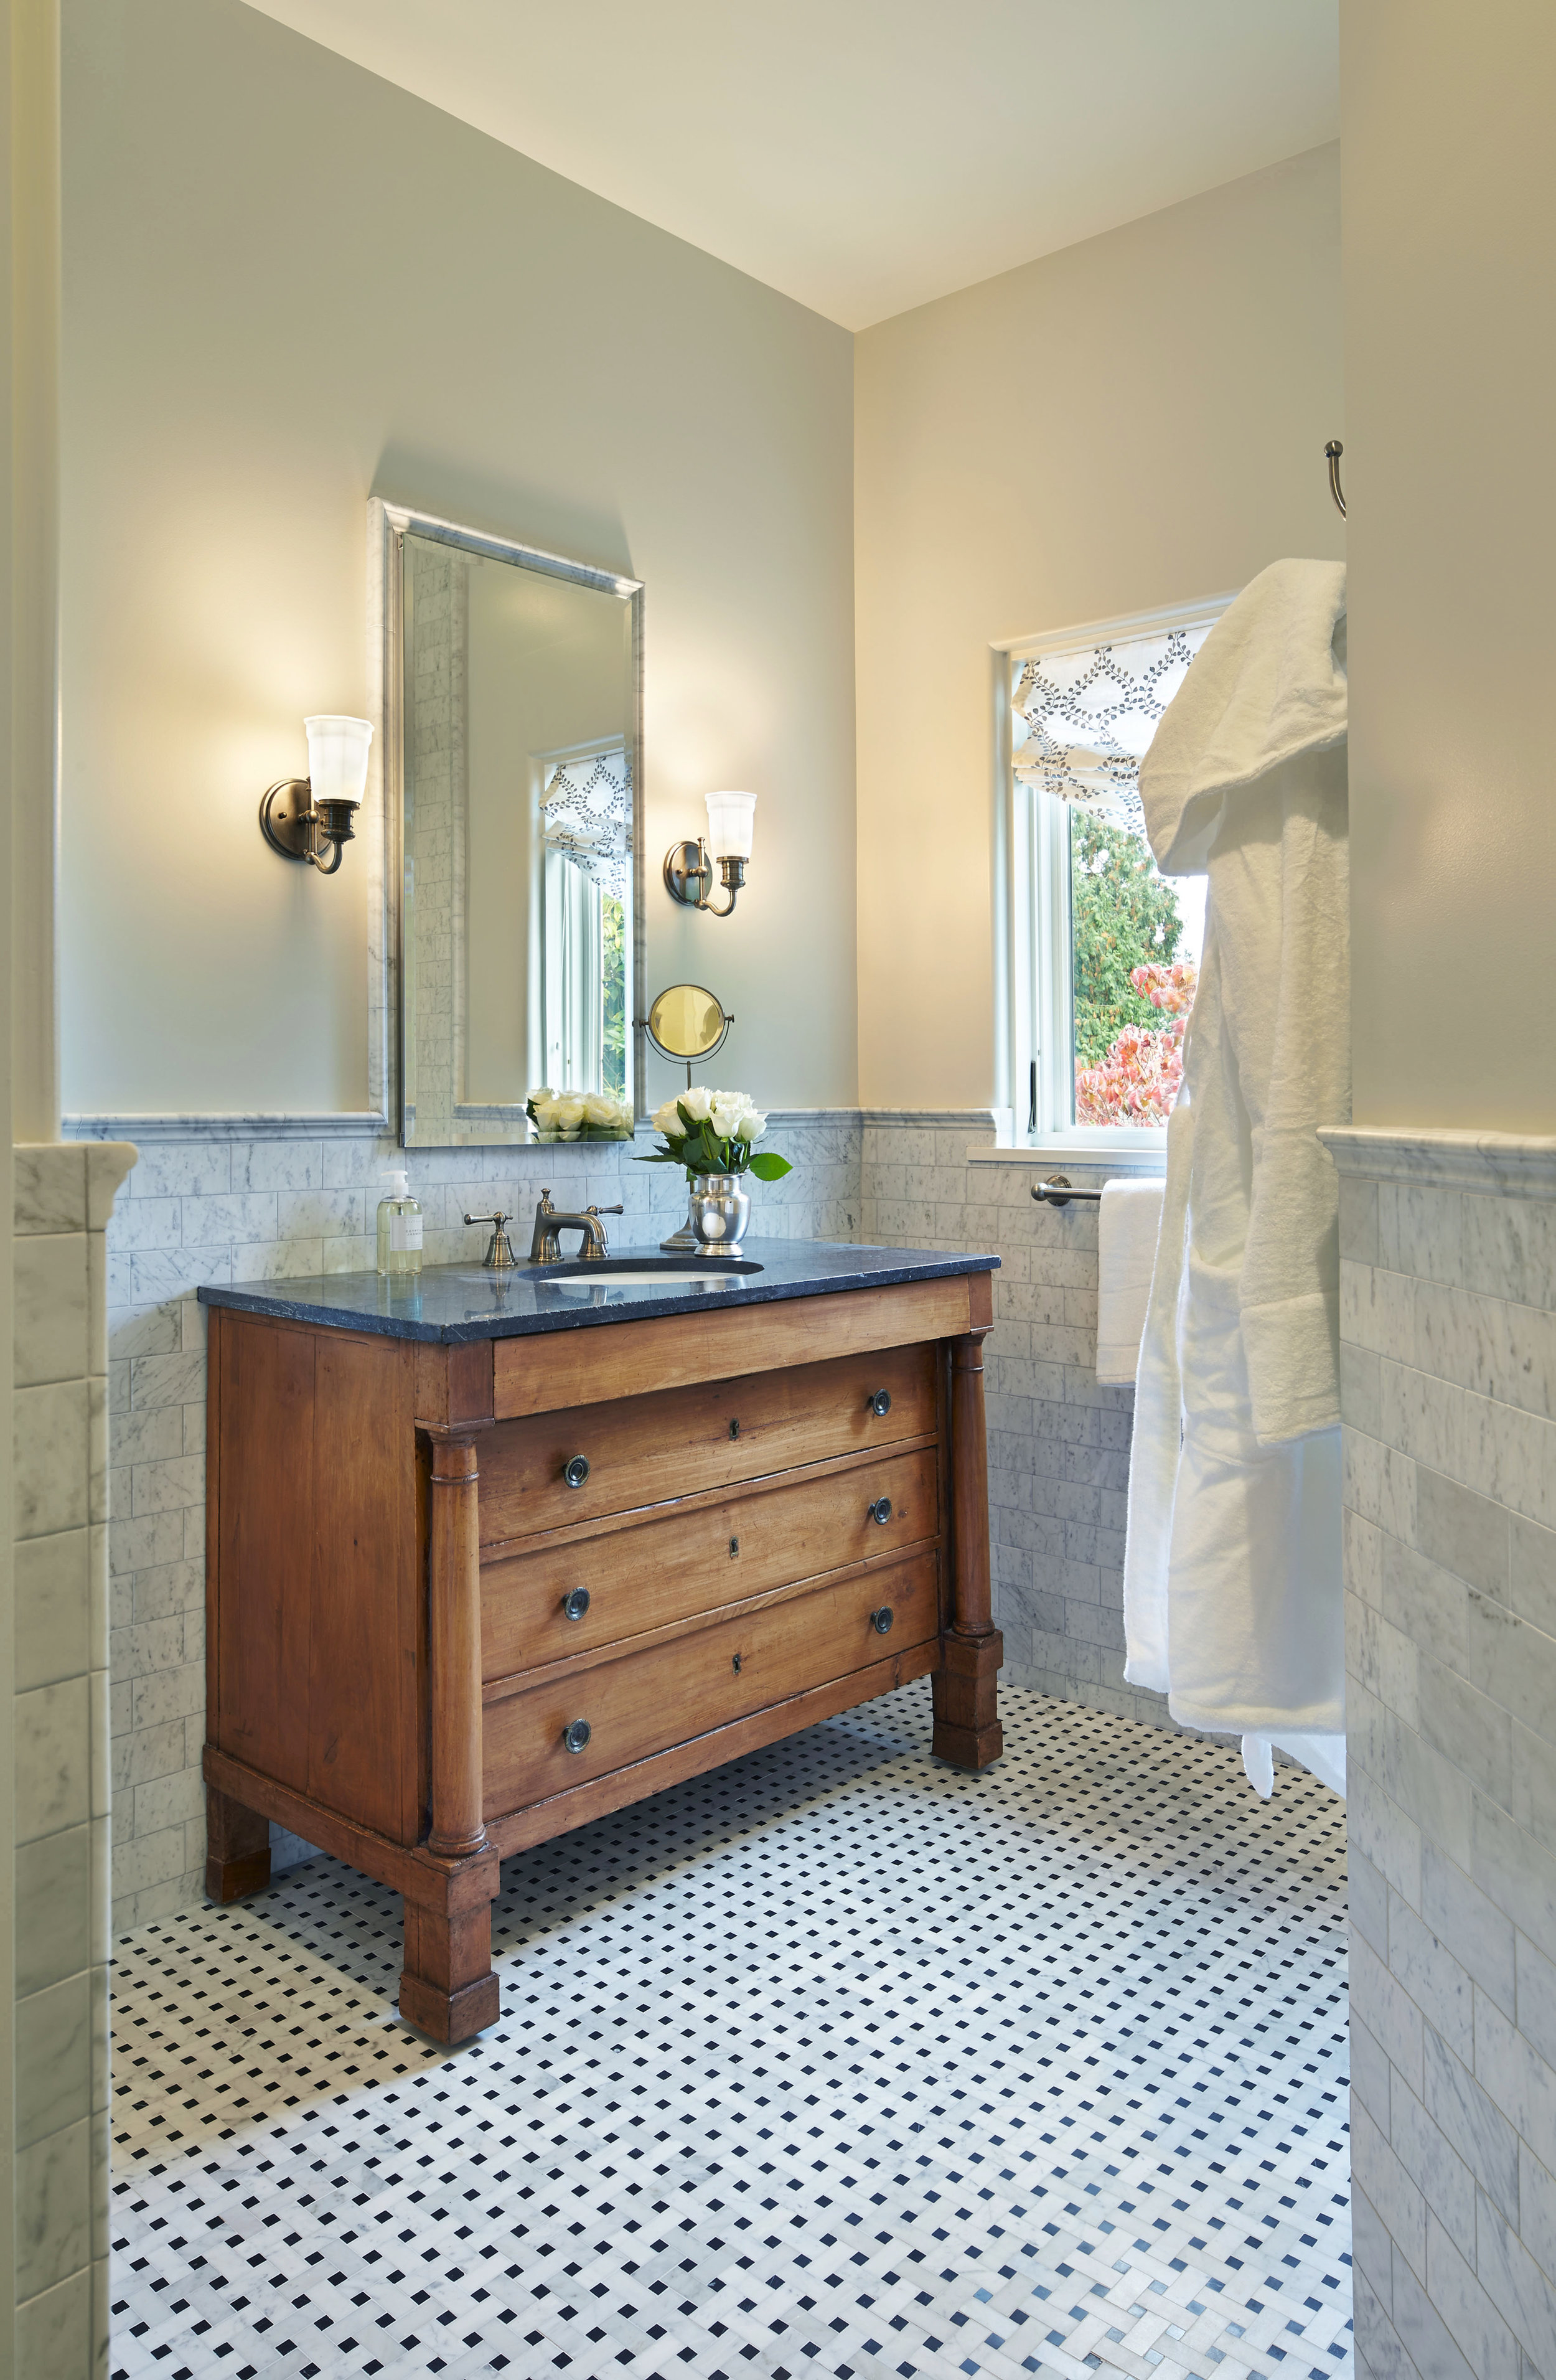 Hyde Evans Design_Interior Design Seattle_Kitchen and Bath Design_Medina 01.jpg